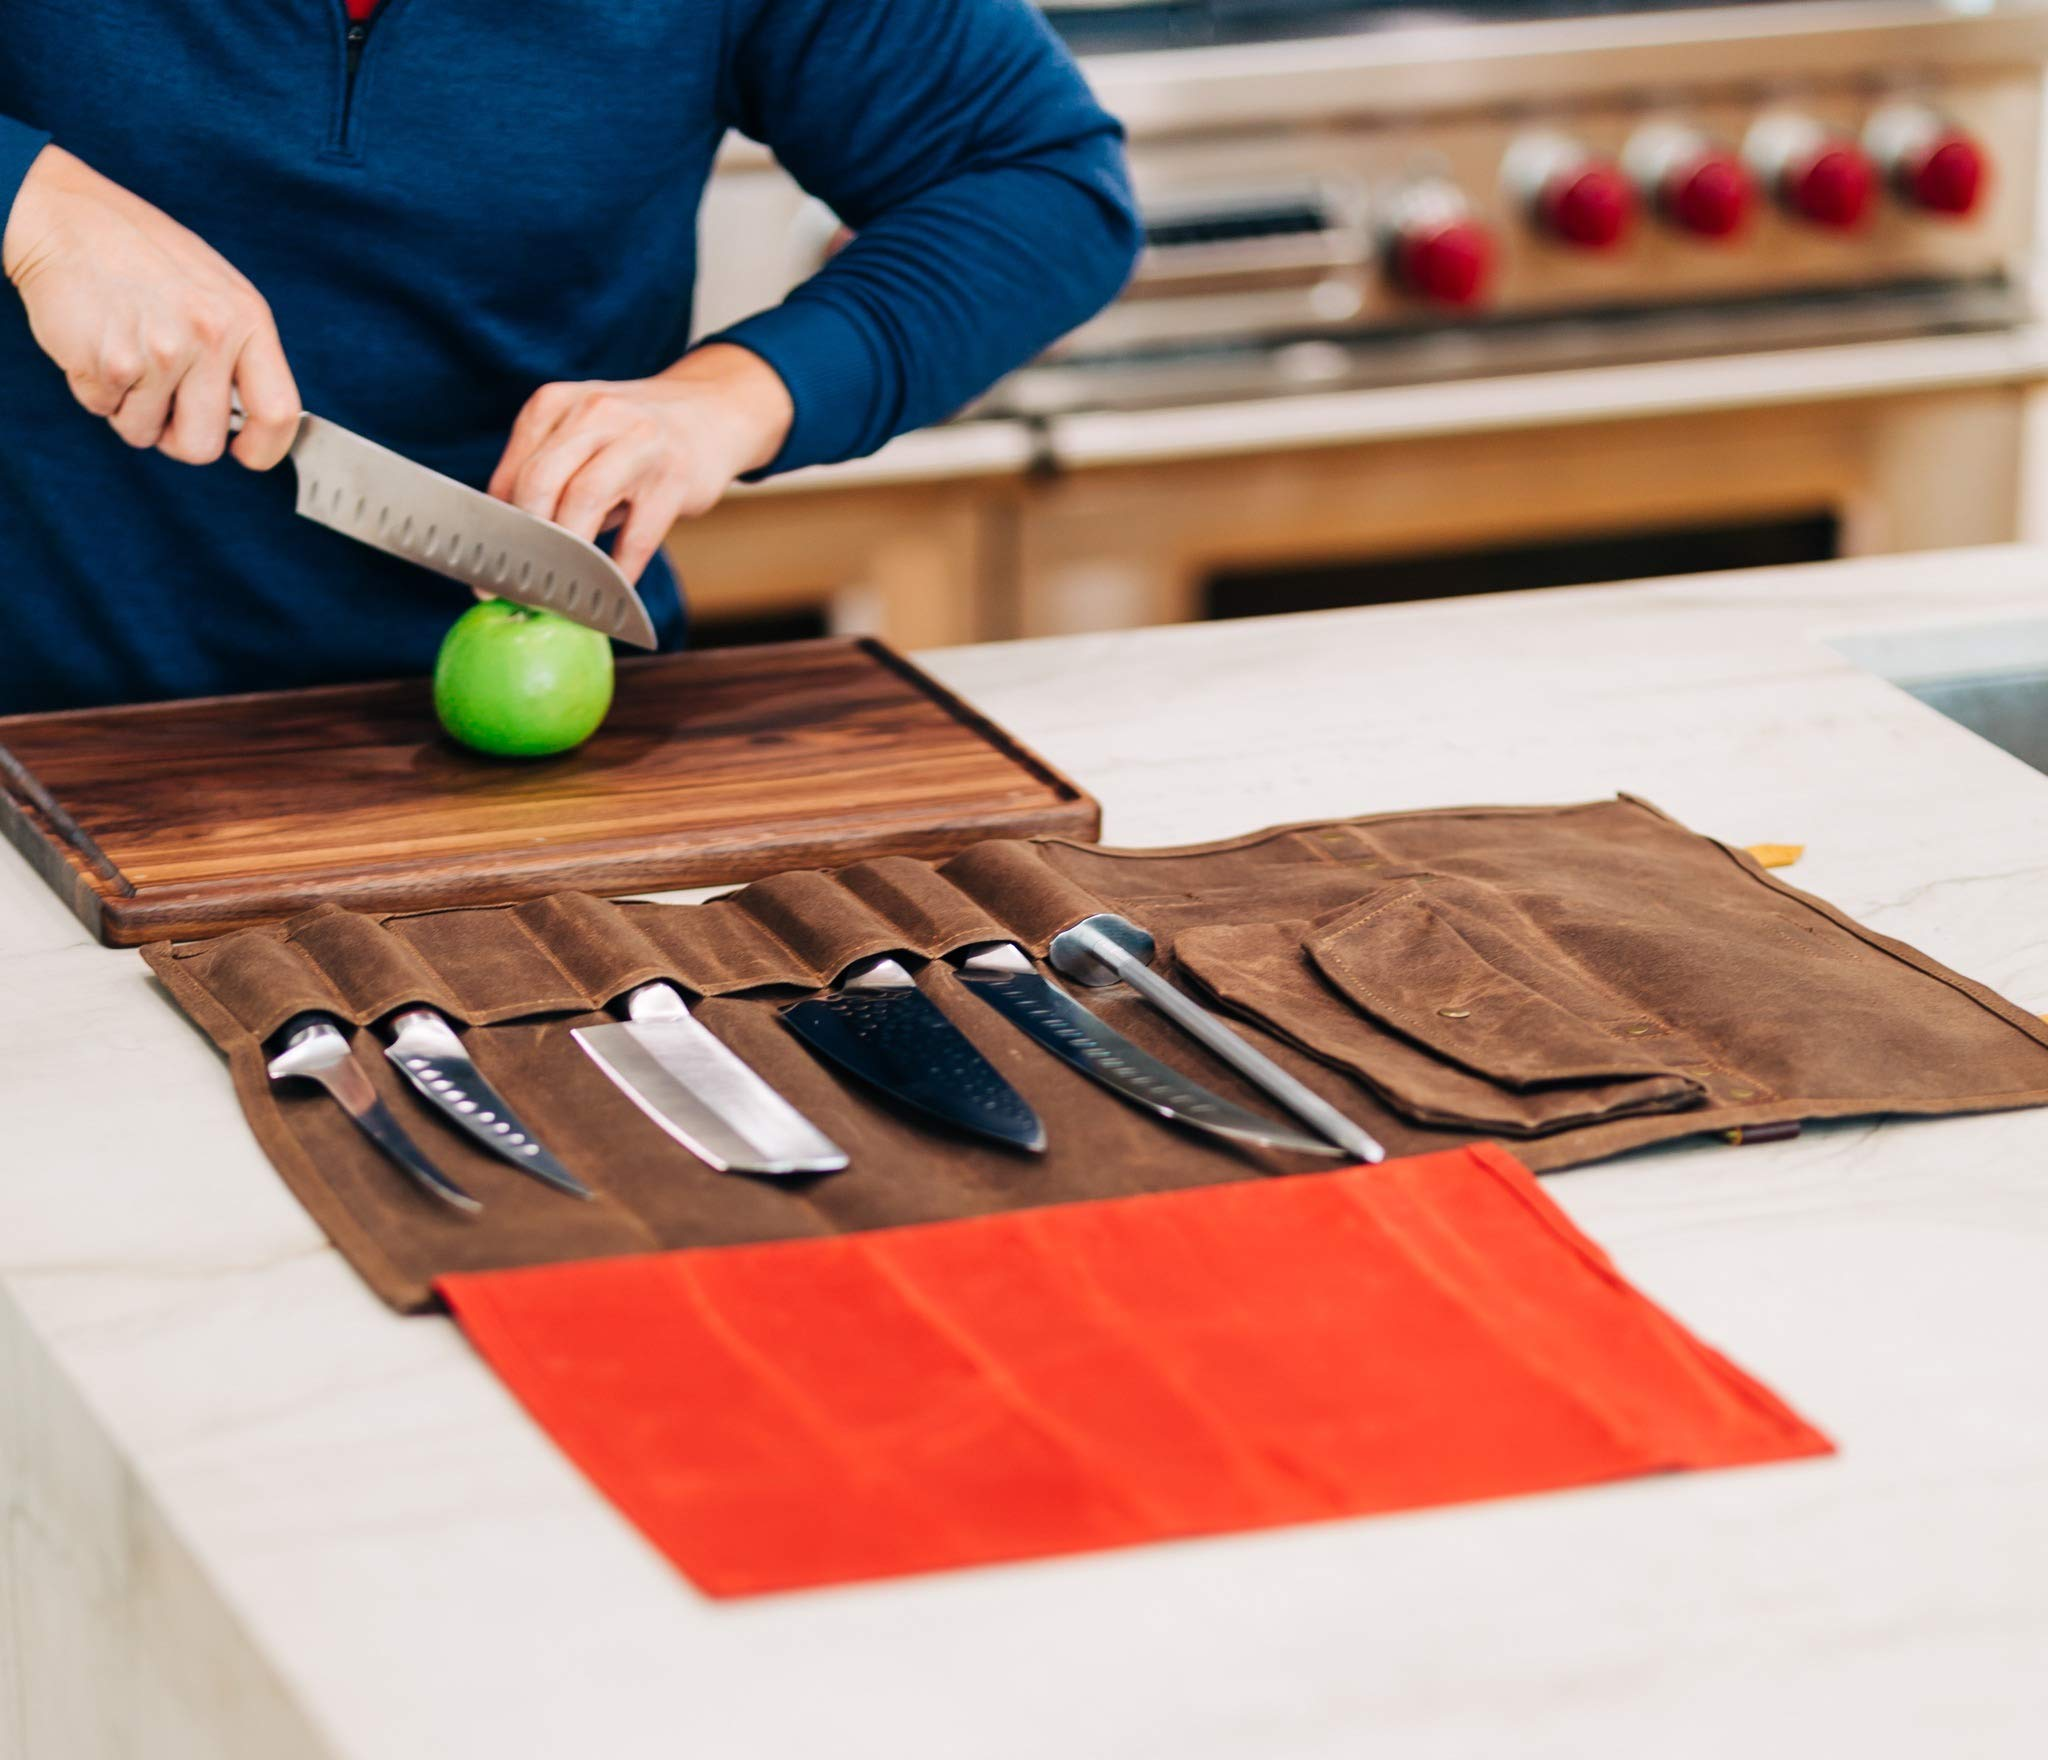 Chef's Knife Roll Bag Durable Waxed Canvas Carrier Stores 8 Knives PLUS Detachable Storage Unit for Culinary Accessories | Portable Chef Knife Case with Leather Shoulder Strap | Knives not Included by Katana Chef (Image #5)